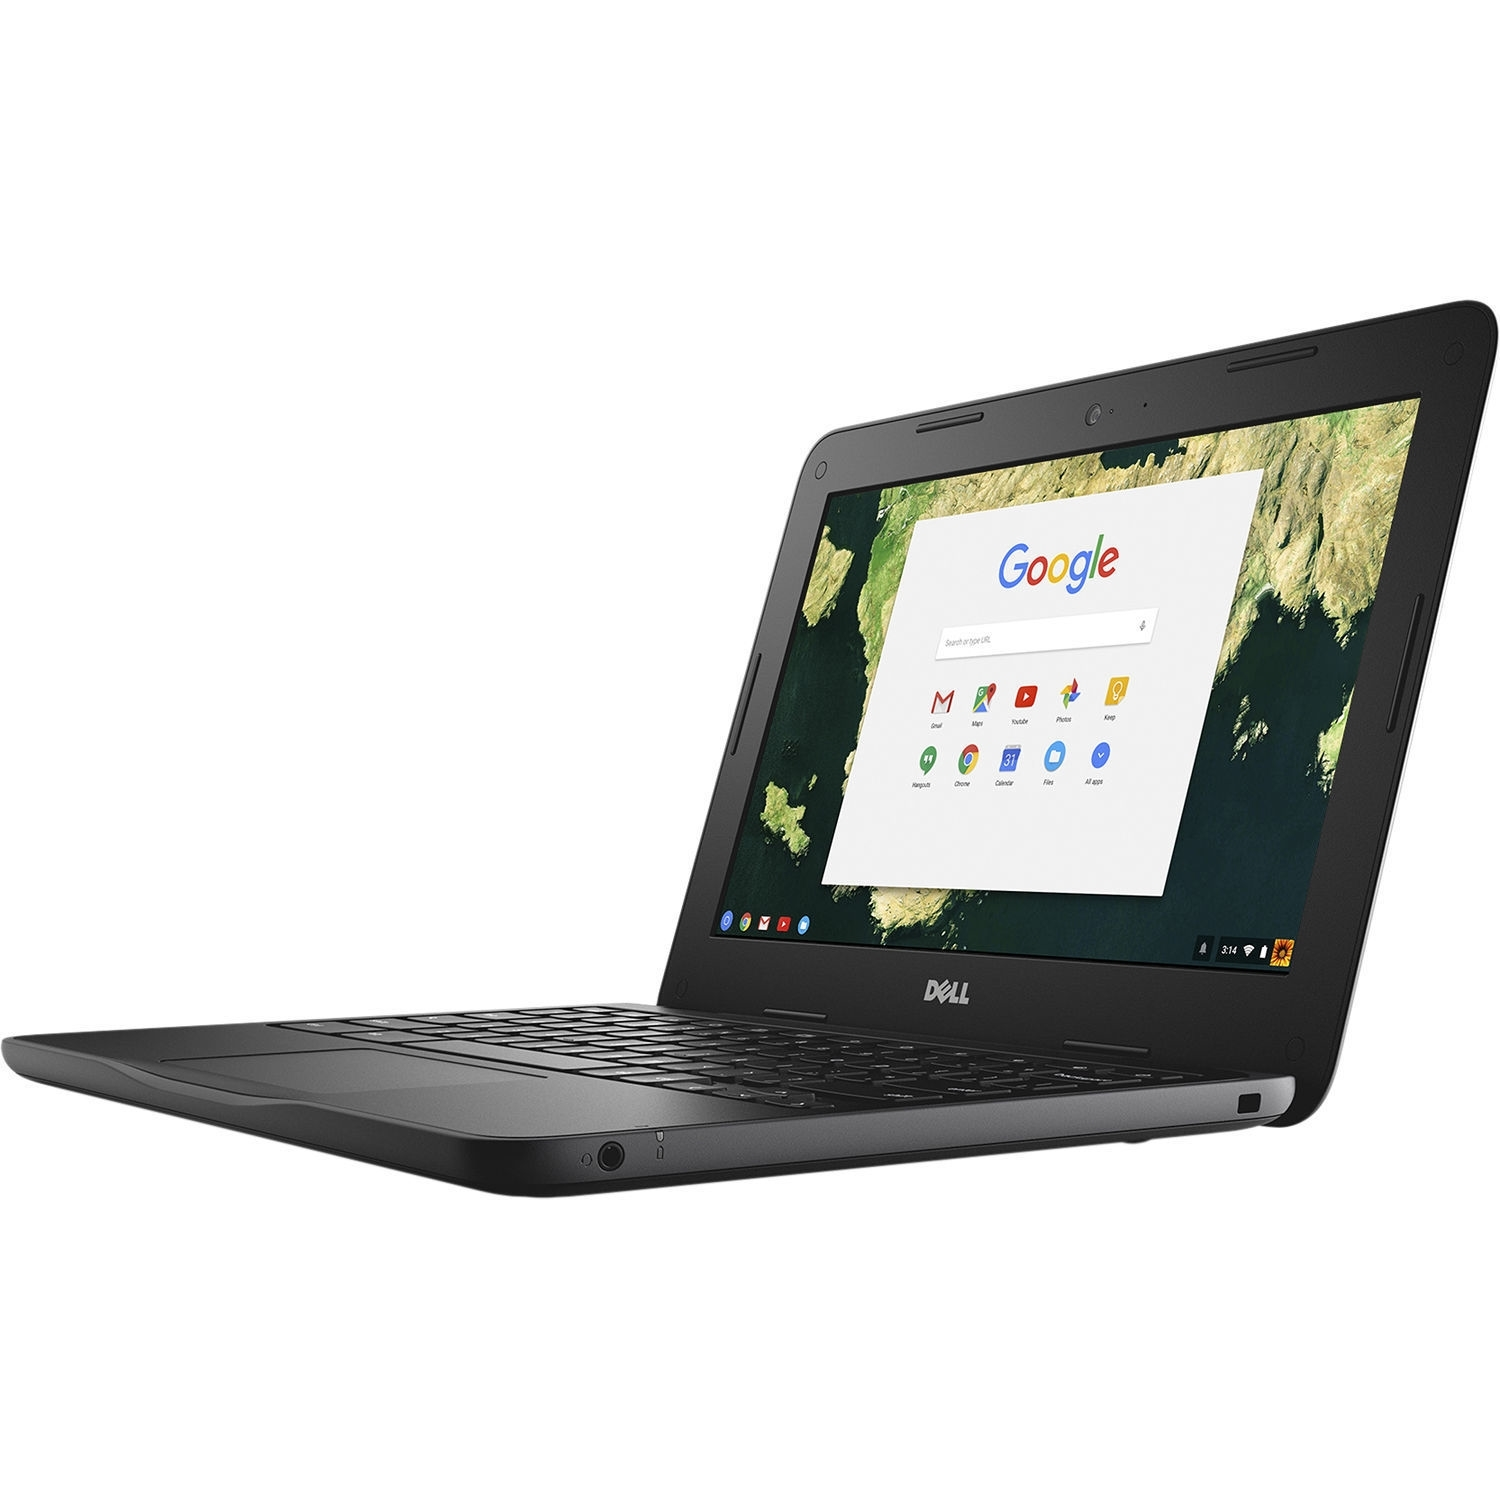 "Dell Chromebook 11 - 3180 Intel Celeron N3060 X2 1.6GHz 4GB 16GB 11.6"", Black (Scratch And Dent Refurbished)"